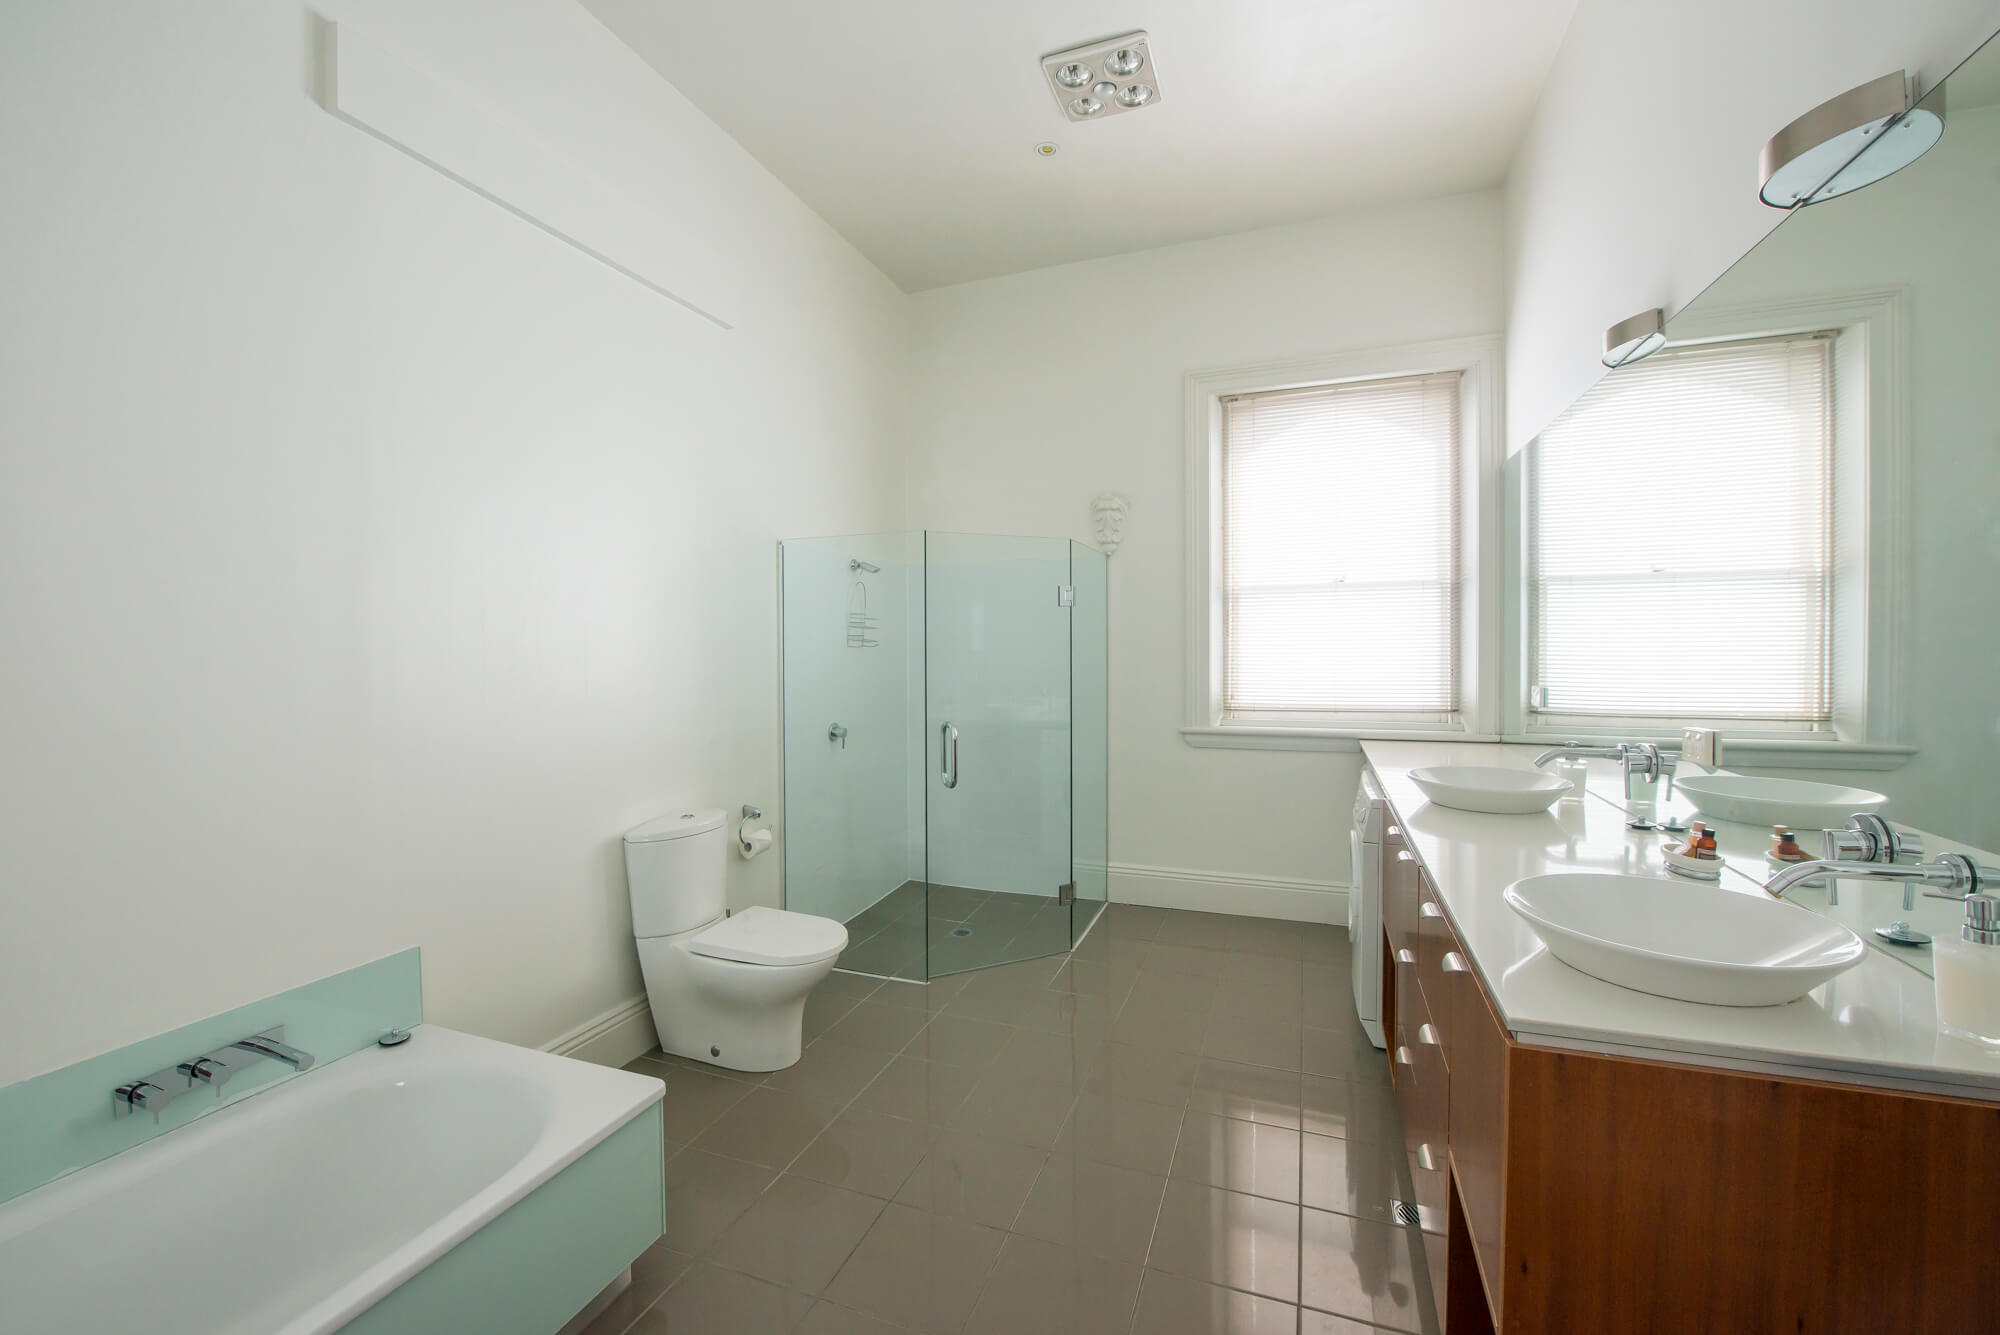 Apartment1bathroom146.jpg